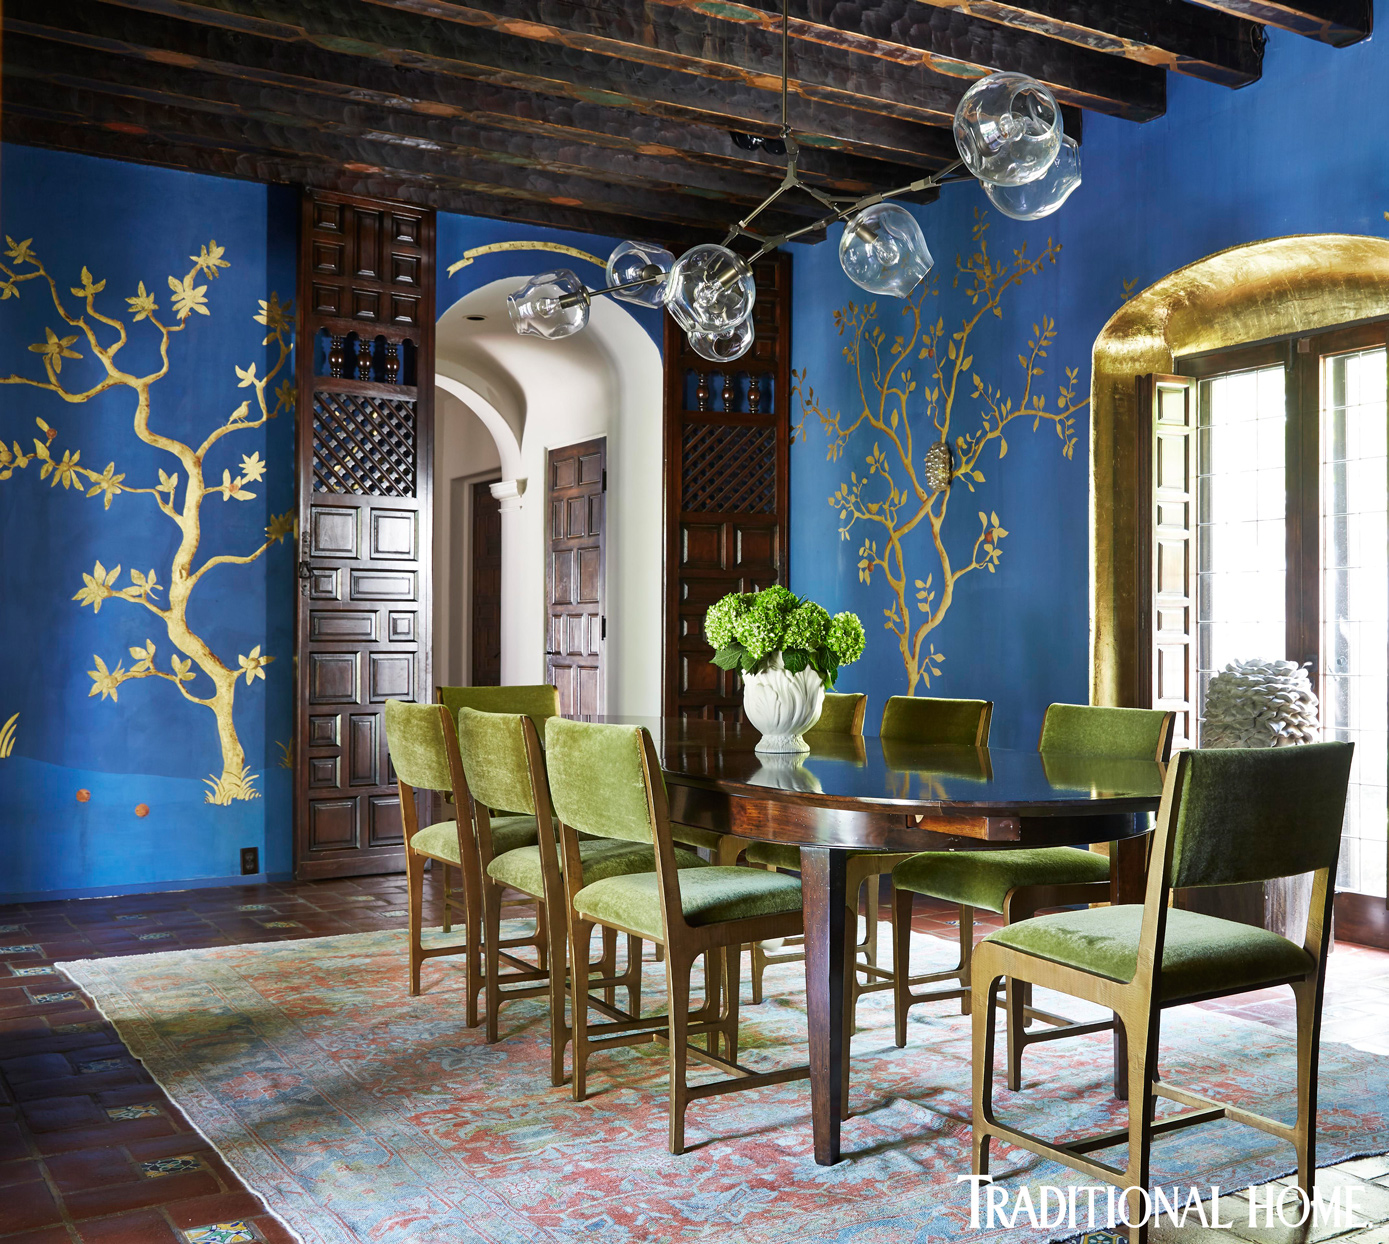 vibrant blue dining room with green chairs and wooden table in spanish colonial home